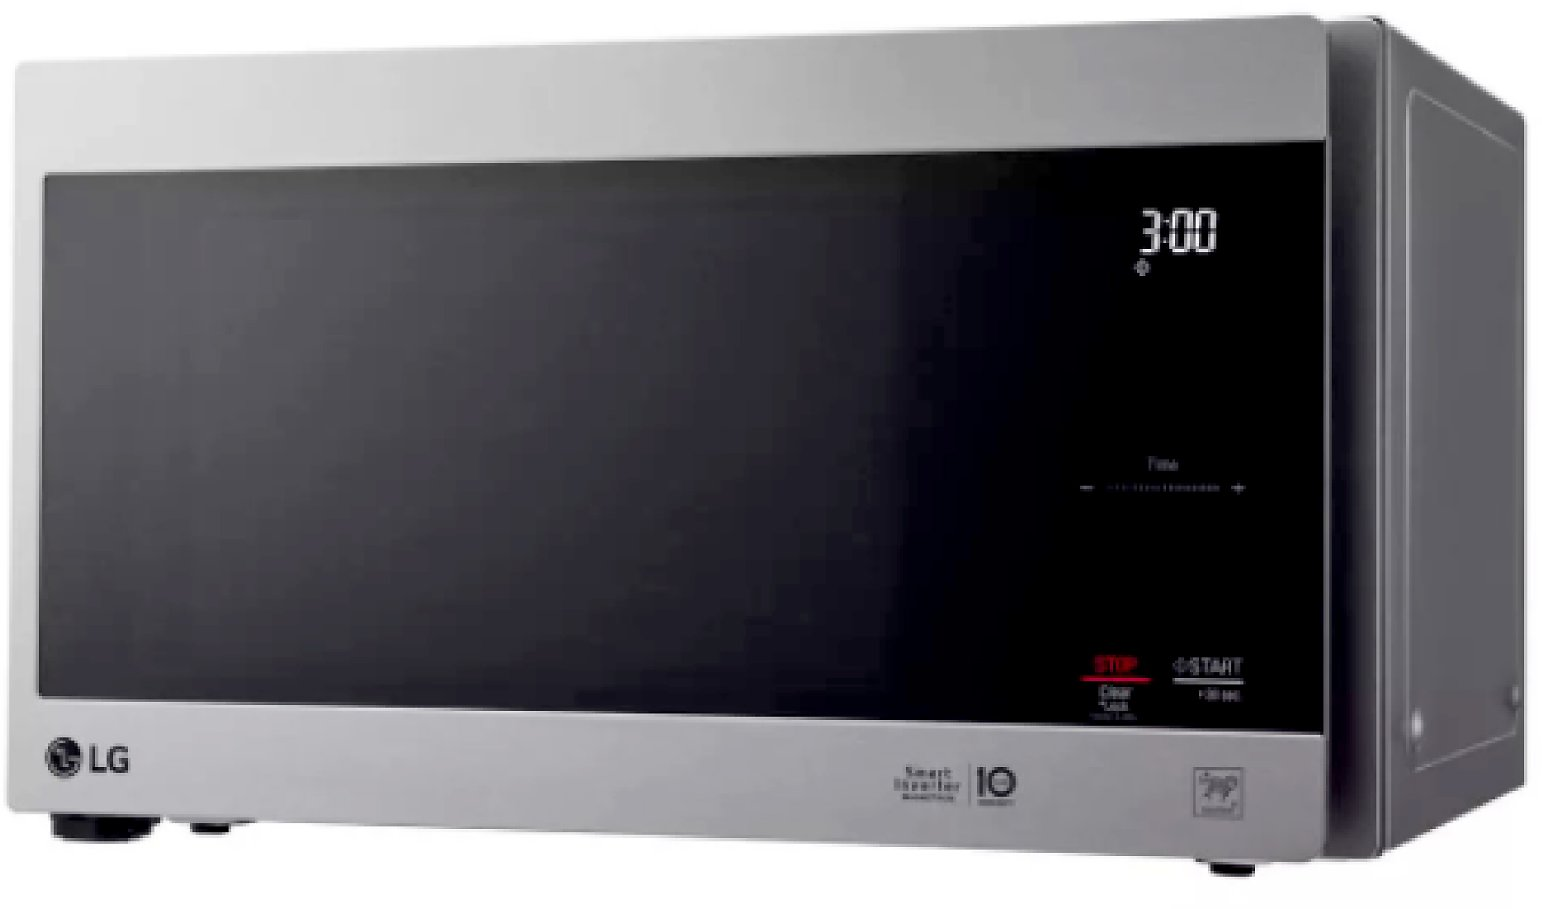 LG NeoChef Stainless Steel 0.9 Cubic Feet Microwave (Manufacturer Refurbished)